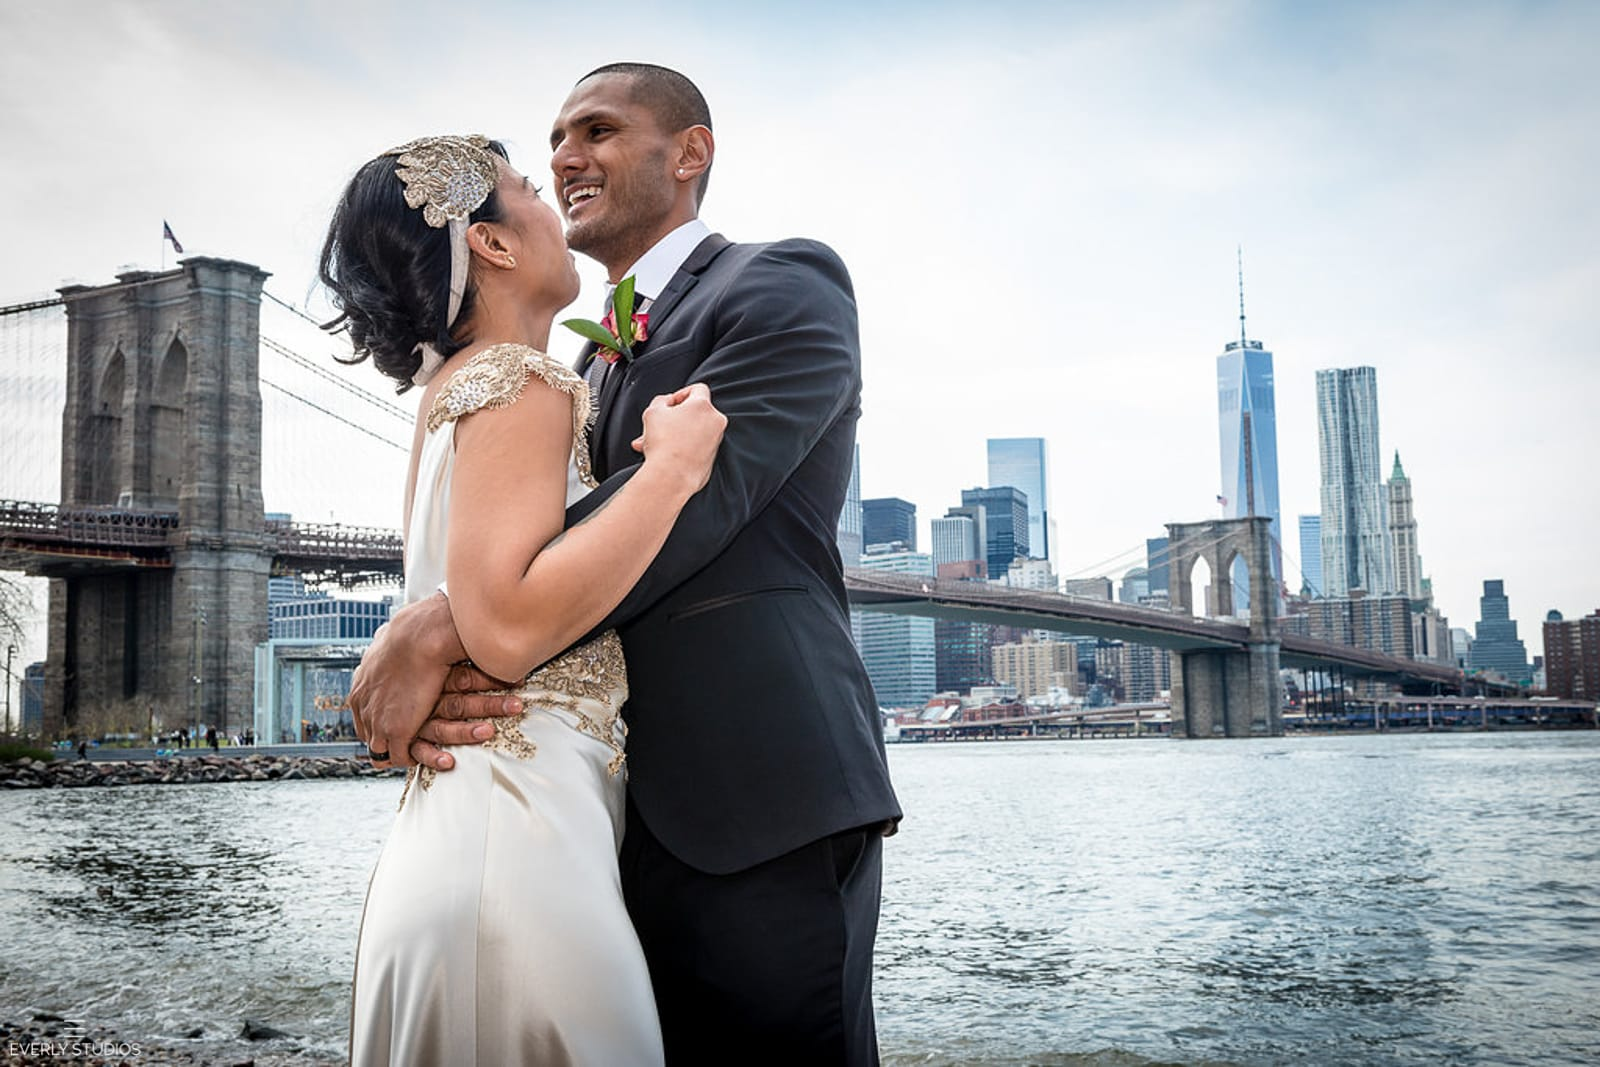 Brooklyn Bridge Park wedding. Photos by New York elopement photographer Everly Studios, www.everlystudios.com